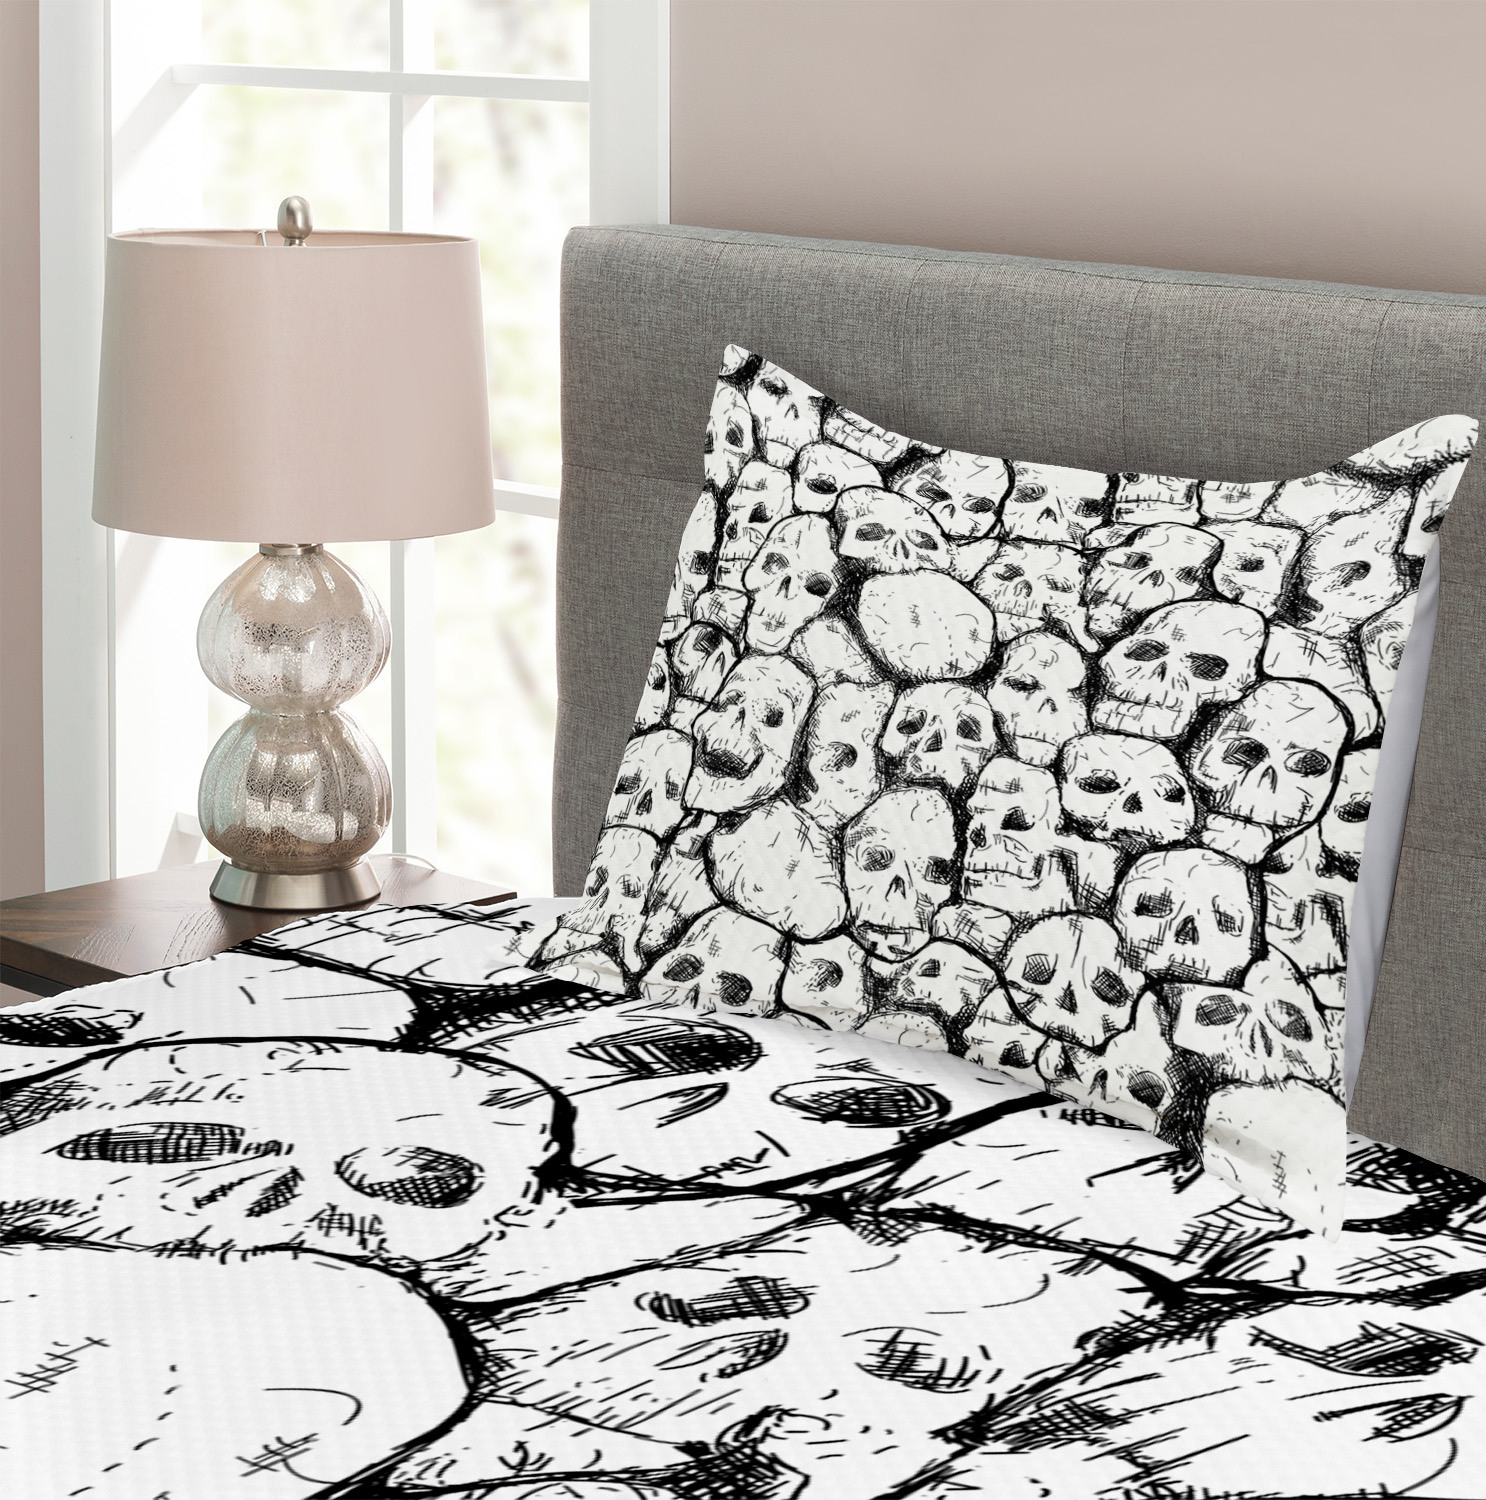 Abstract Skulls Print Black and White Quilted Bedspread /& Pillow Shams Set